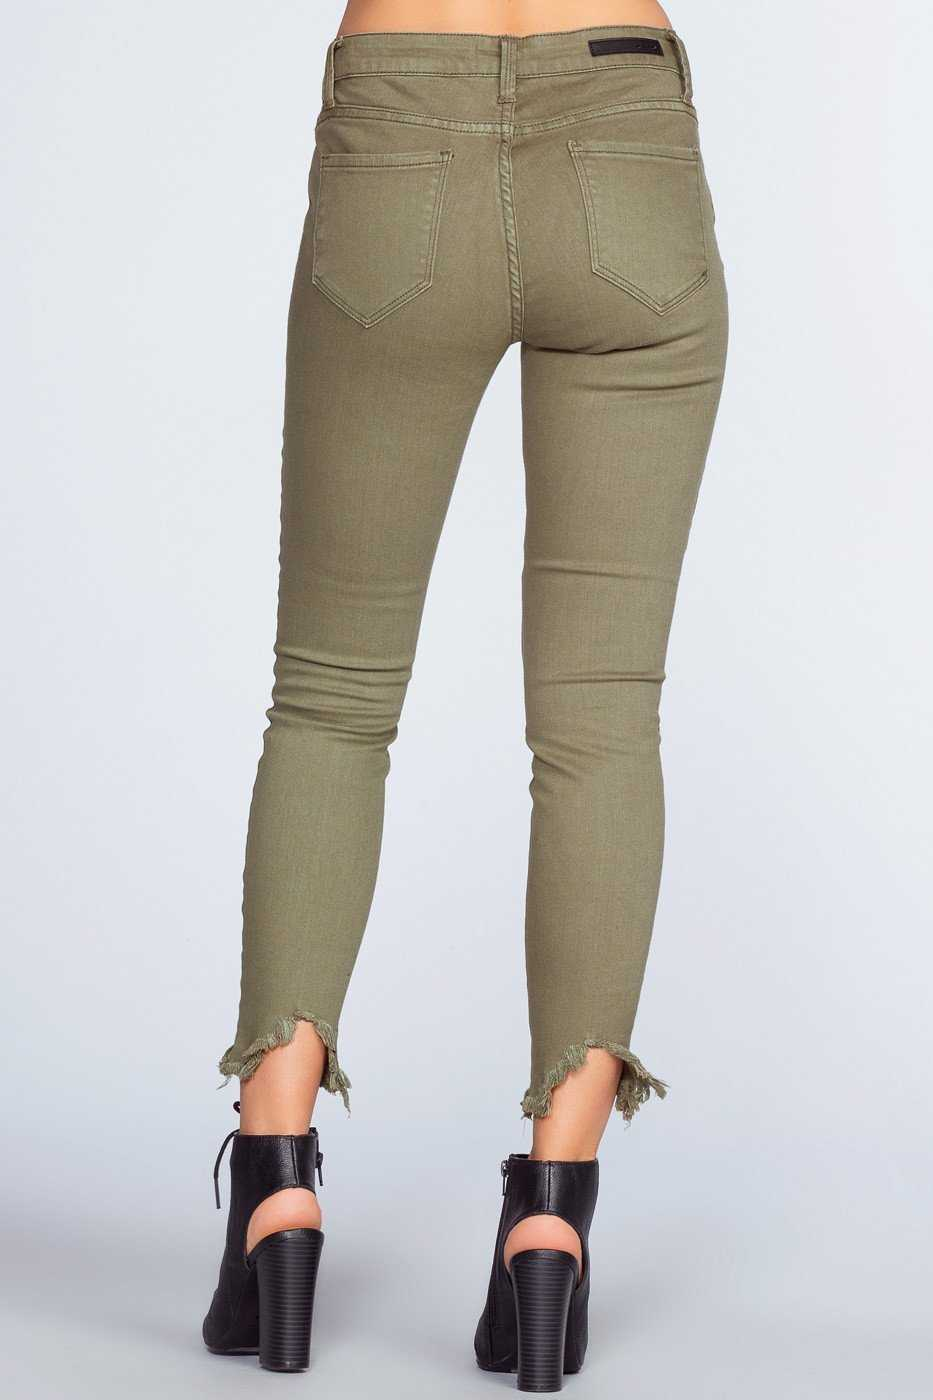 Pants - Melina Distressed Jeans - Olive